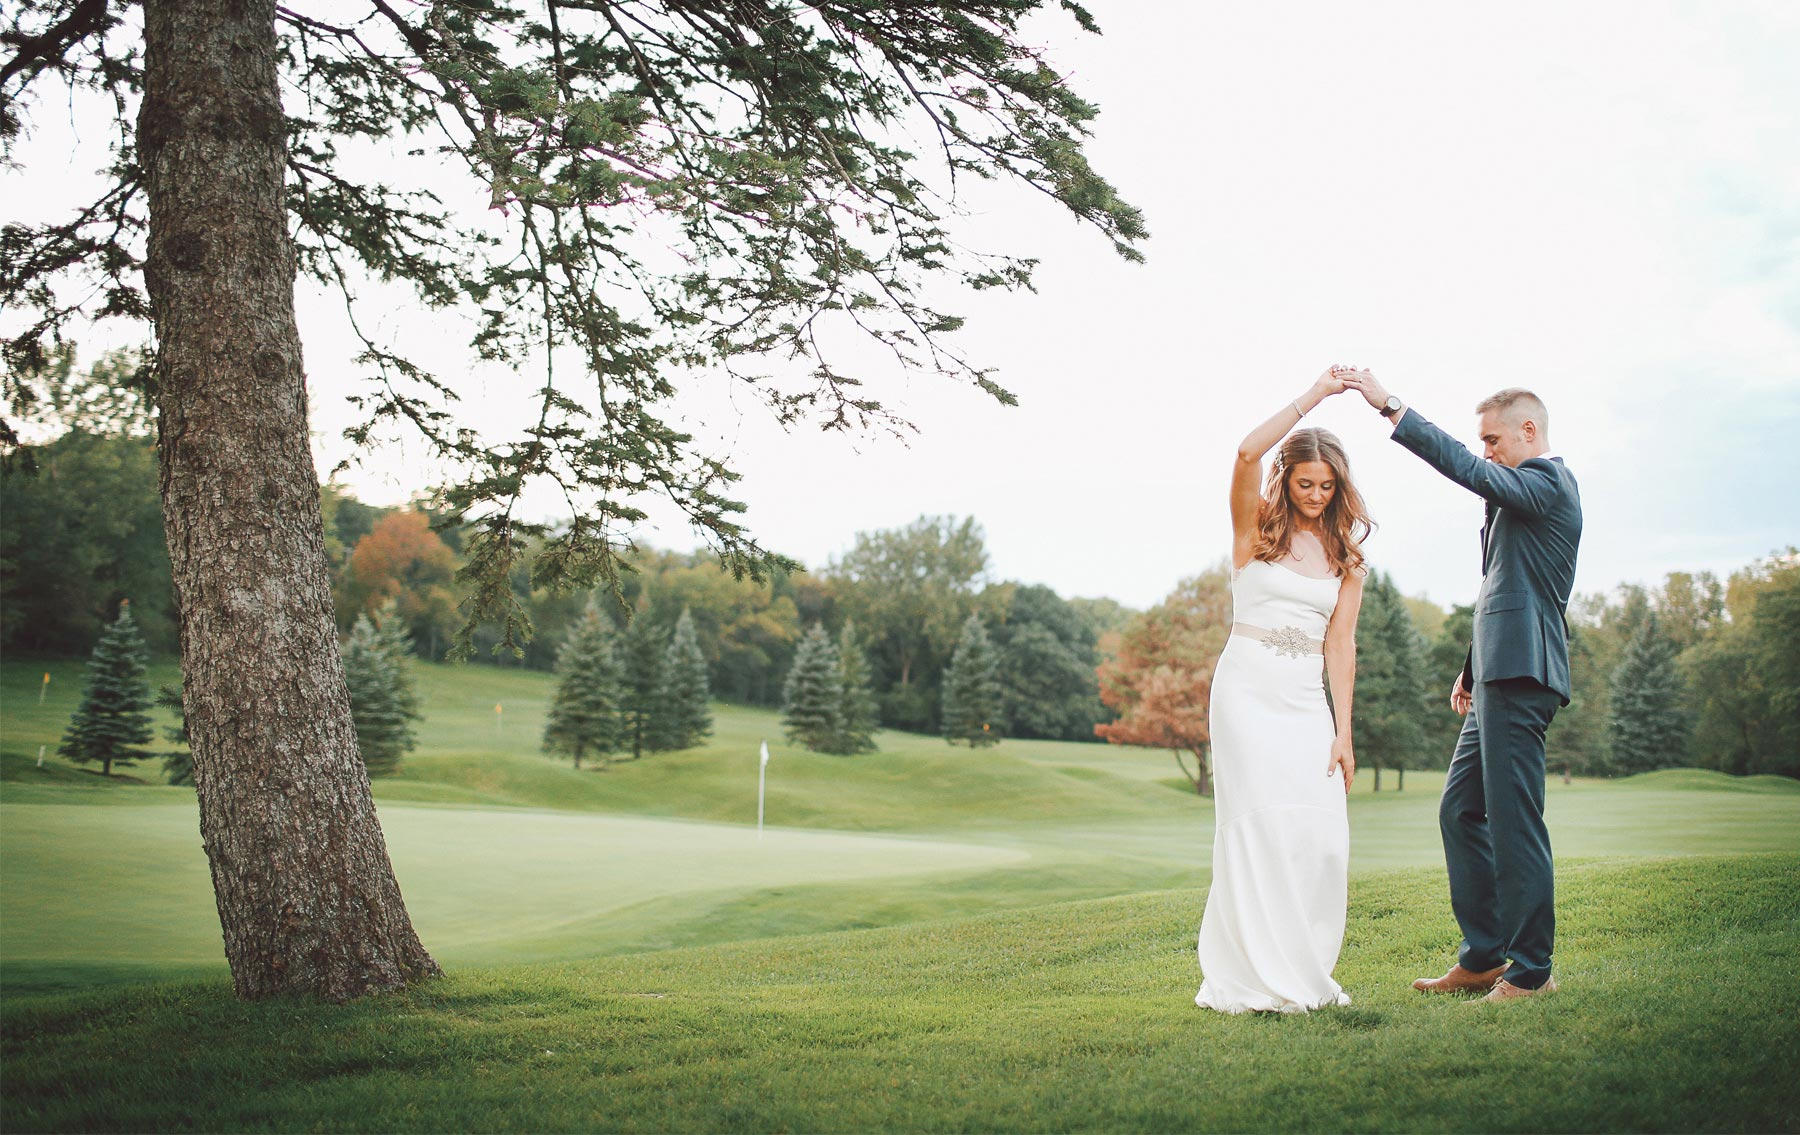 24-Dellwood-Minnesota-Wedding-Photographer-by-Andrew-Vick-Photography-Summer-Country-Club-Reception-Bride-Groom-Golf-Course-Twirl-Vintage-Sarah-and-Landon.jpg